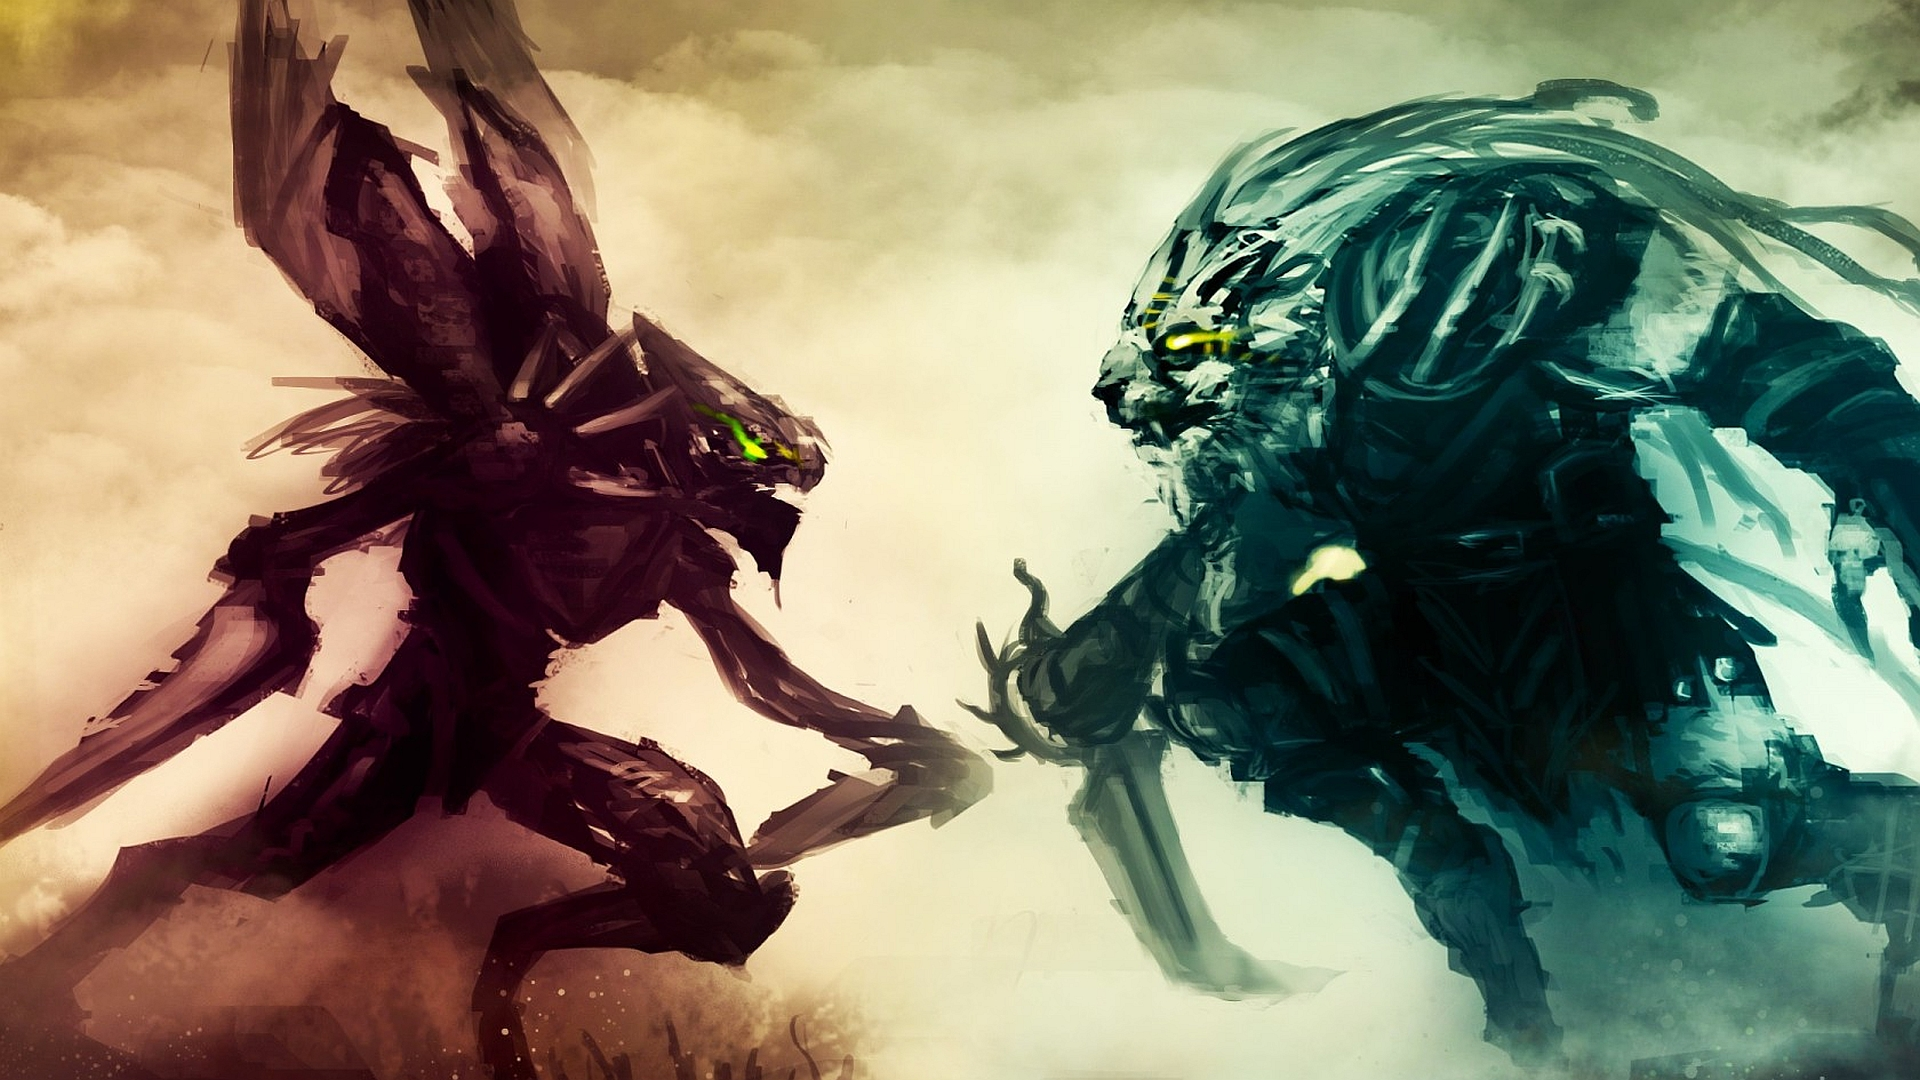 Kha'Zix vs Rengar wallpaper